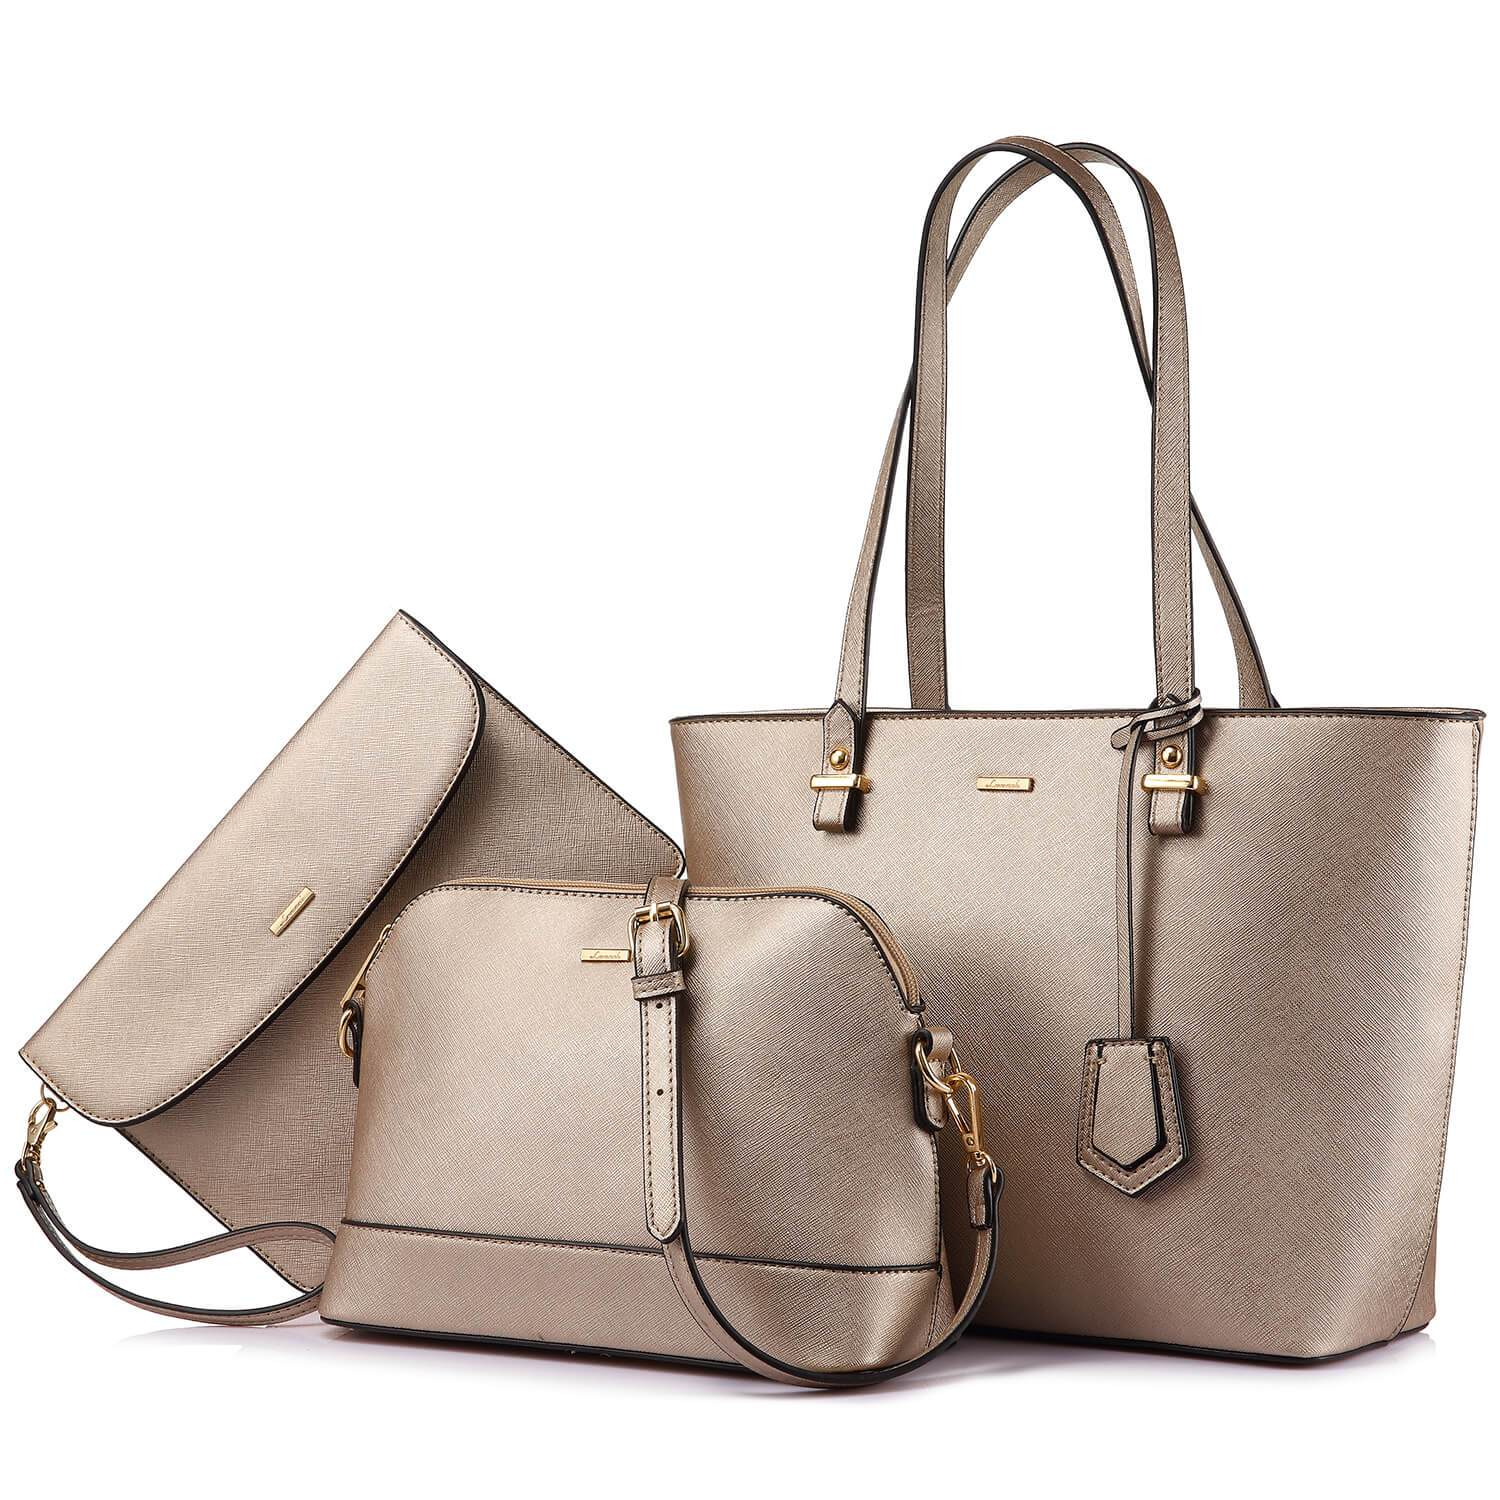 Lovevook-handbag-composite-bag-RHNWB0976-Khaki-positive